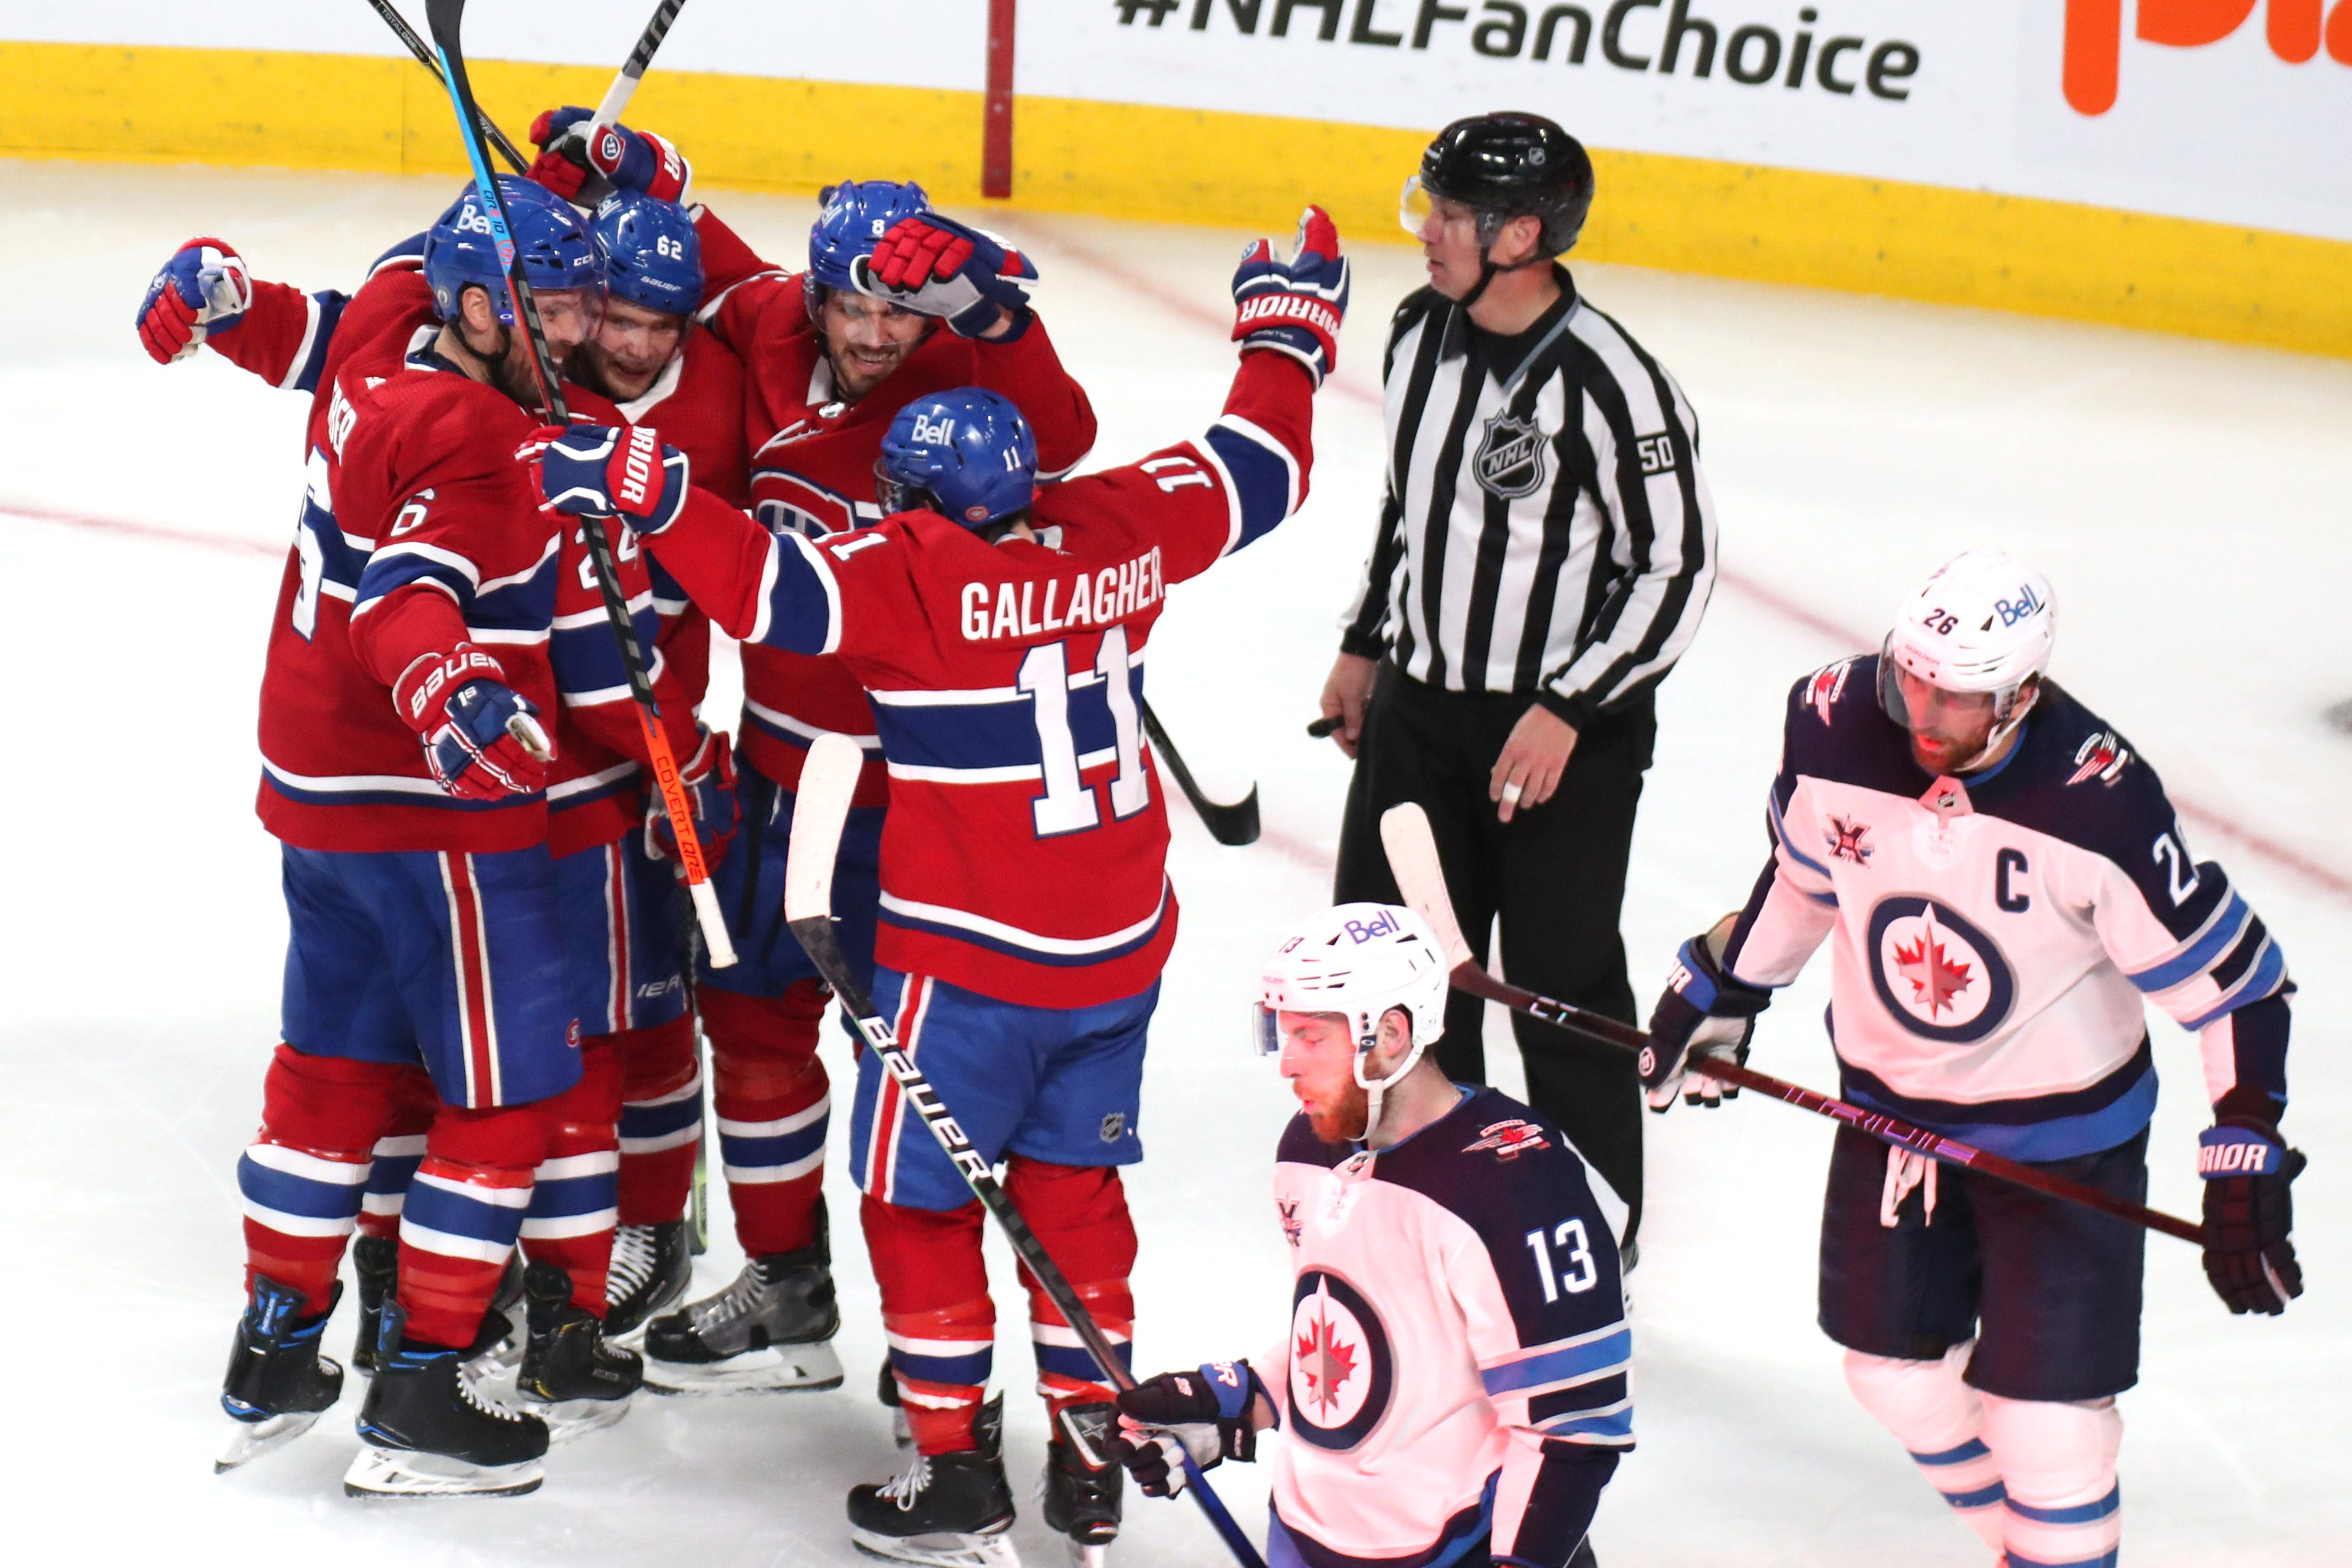 Troubling signs: Where the Winnipeg Jets, Colorado Avalanche and Carolina Hurricanes stand in NHL playoffs